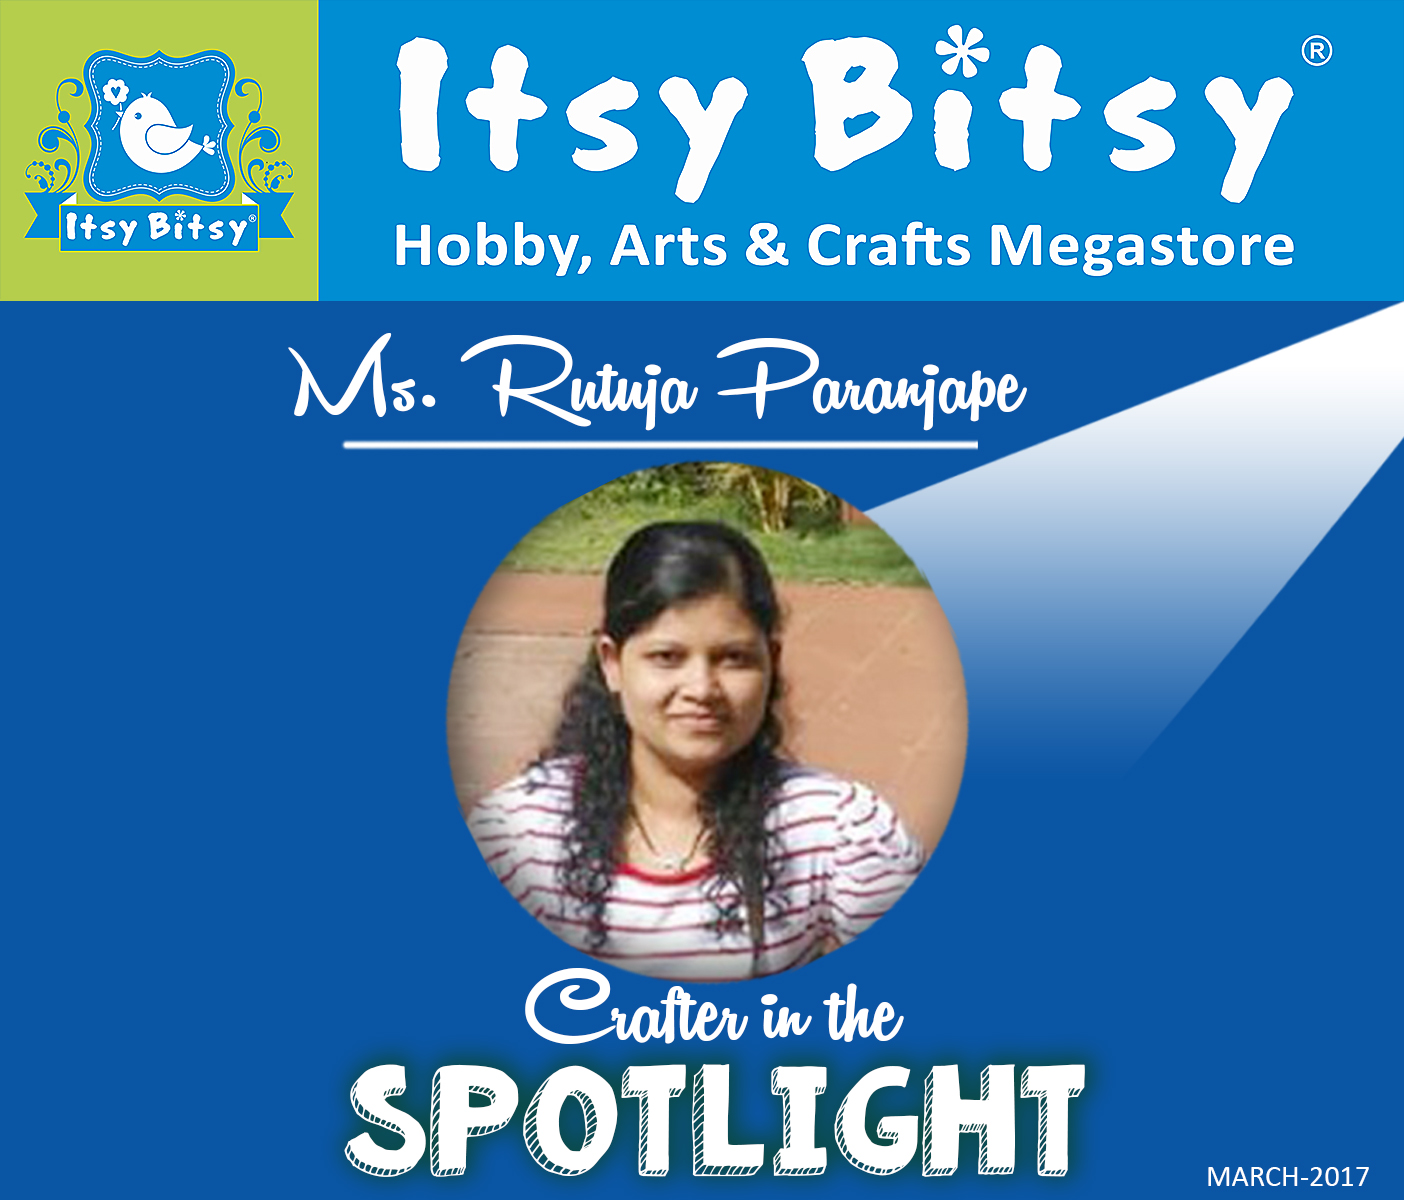 ItsyBitsy Crafter in the spotlight